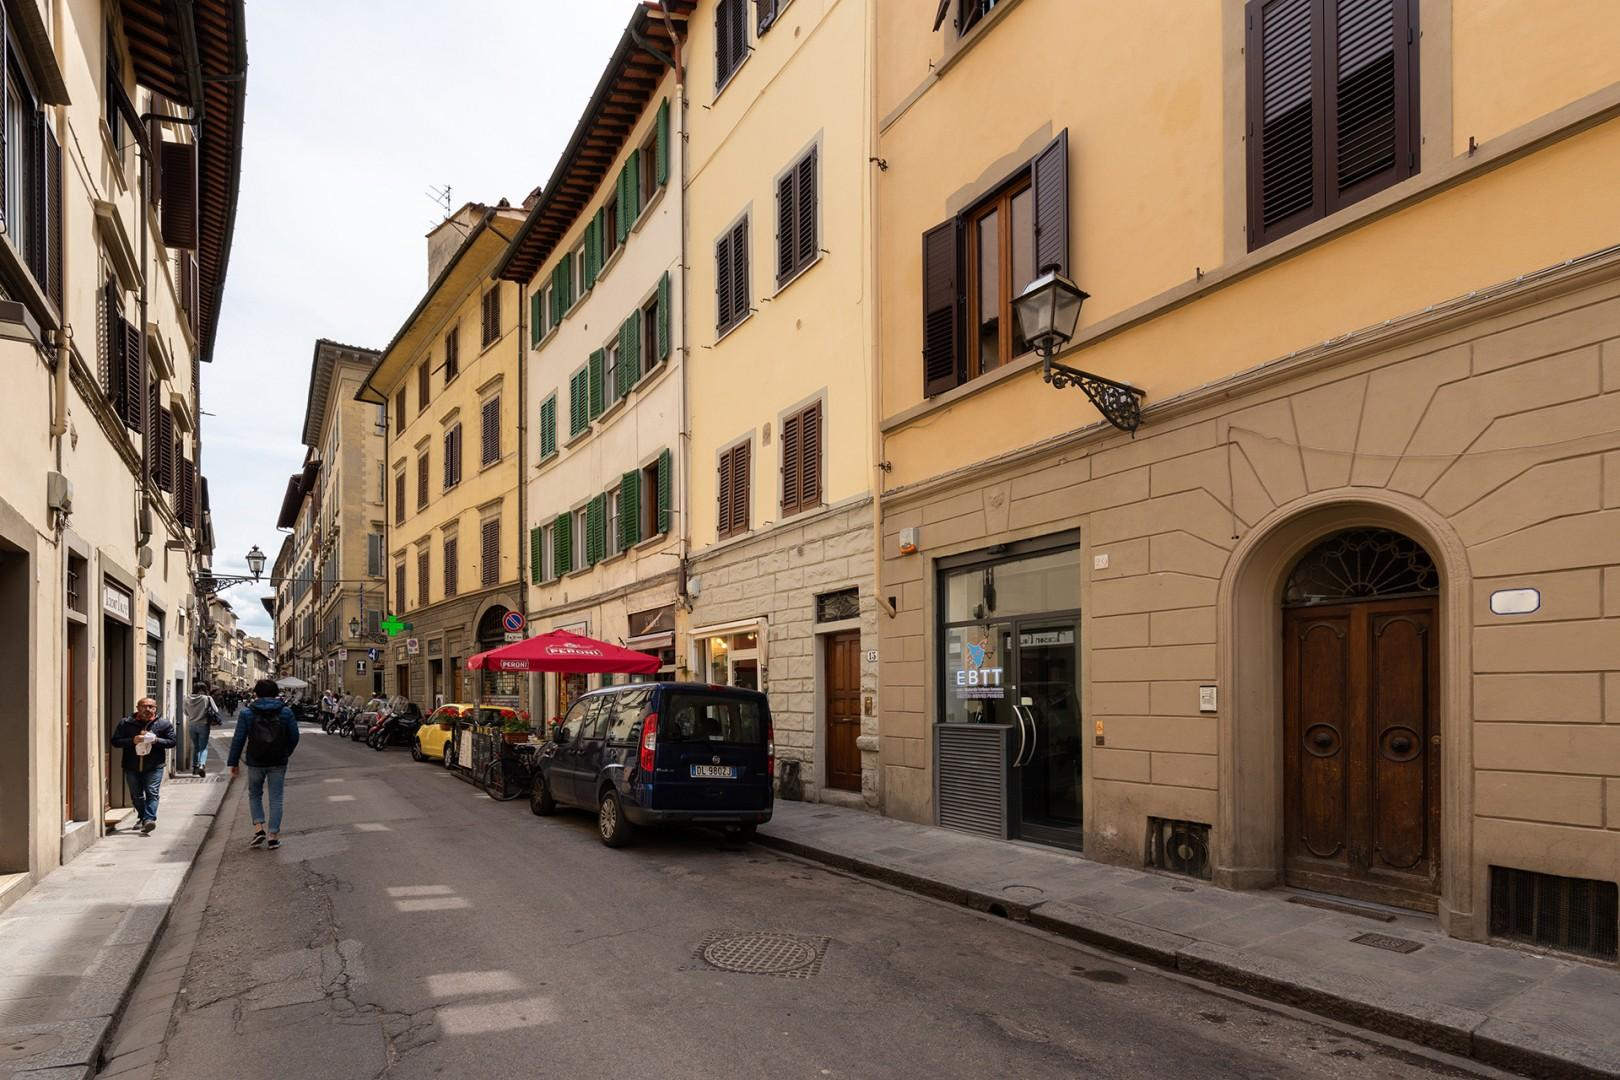 Street where Solare is located has a pizzeria, cafe and small supermarket within a block.